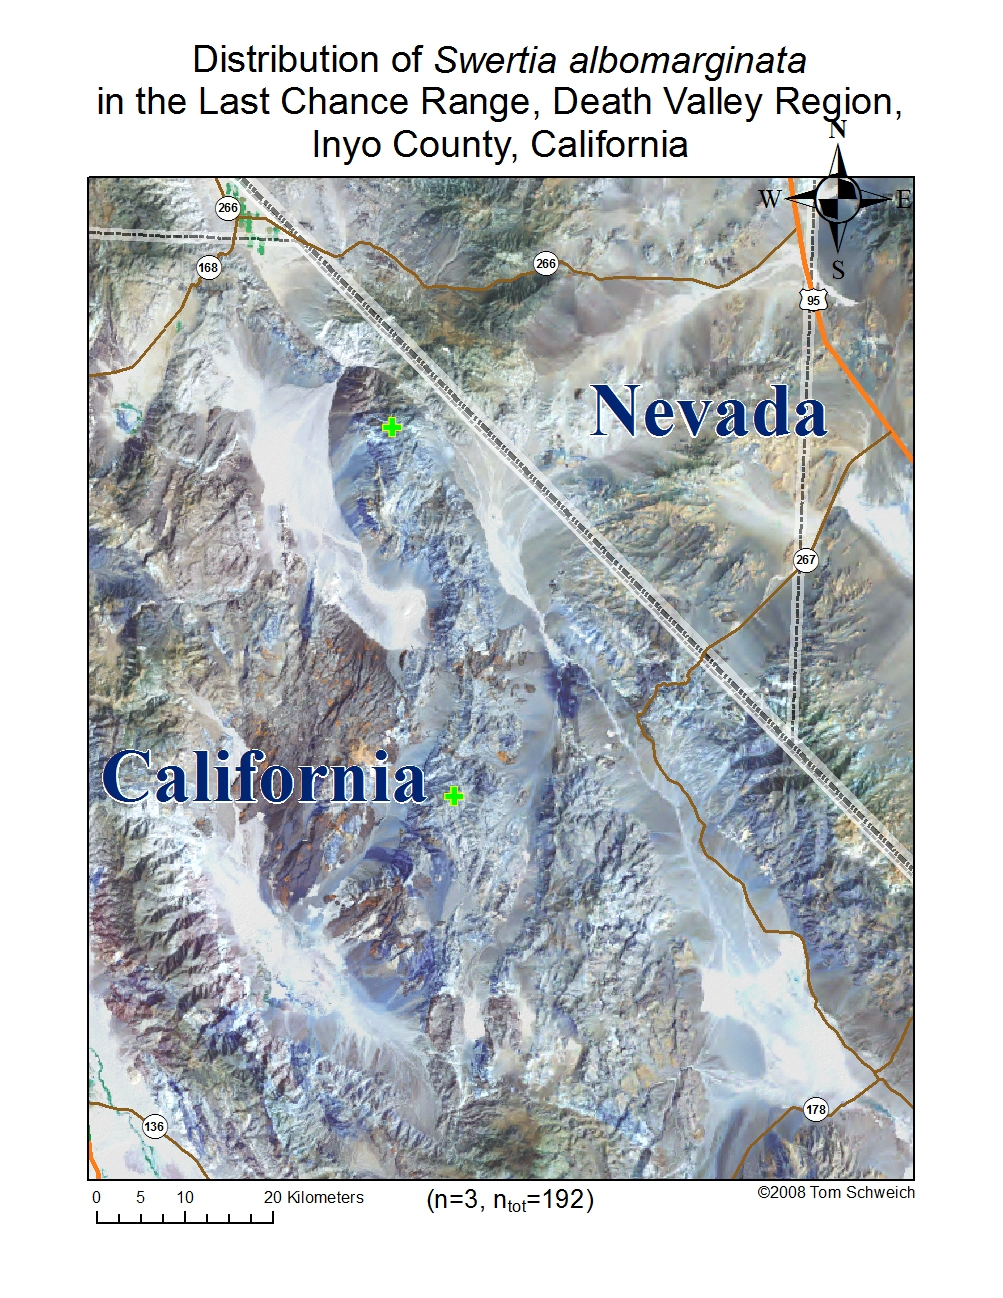 California, Inyo County, Death Valley Region